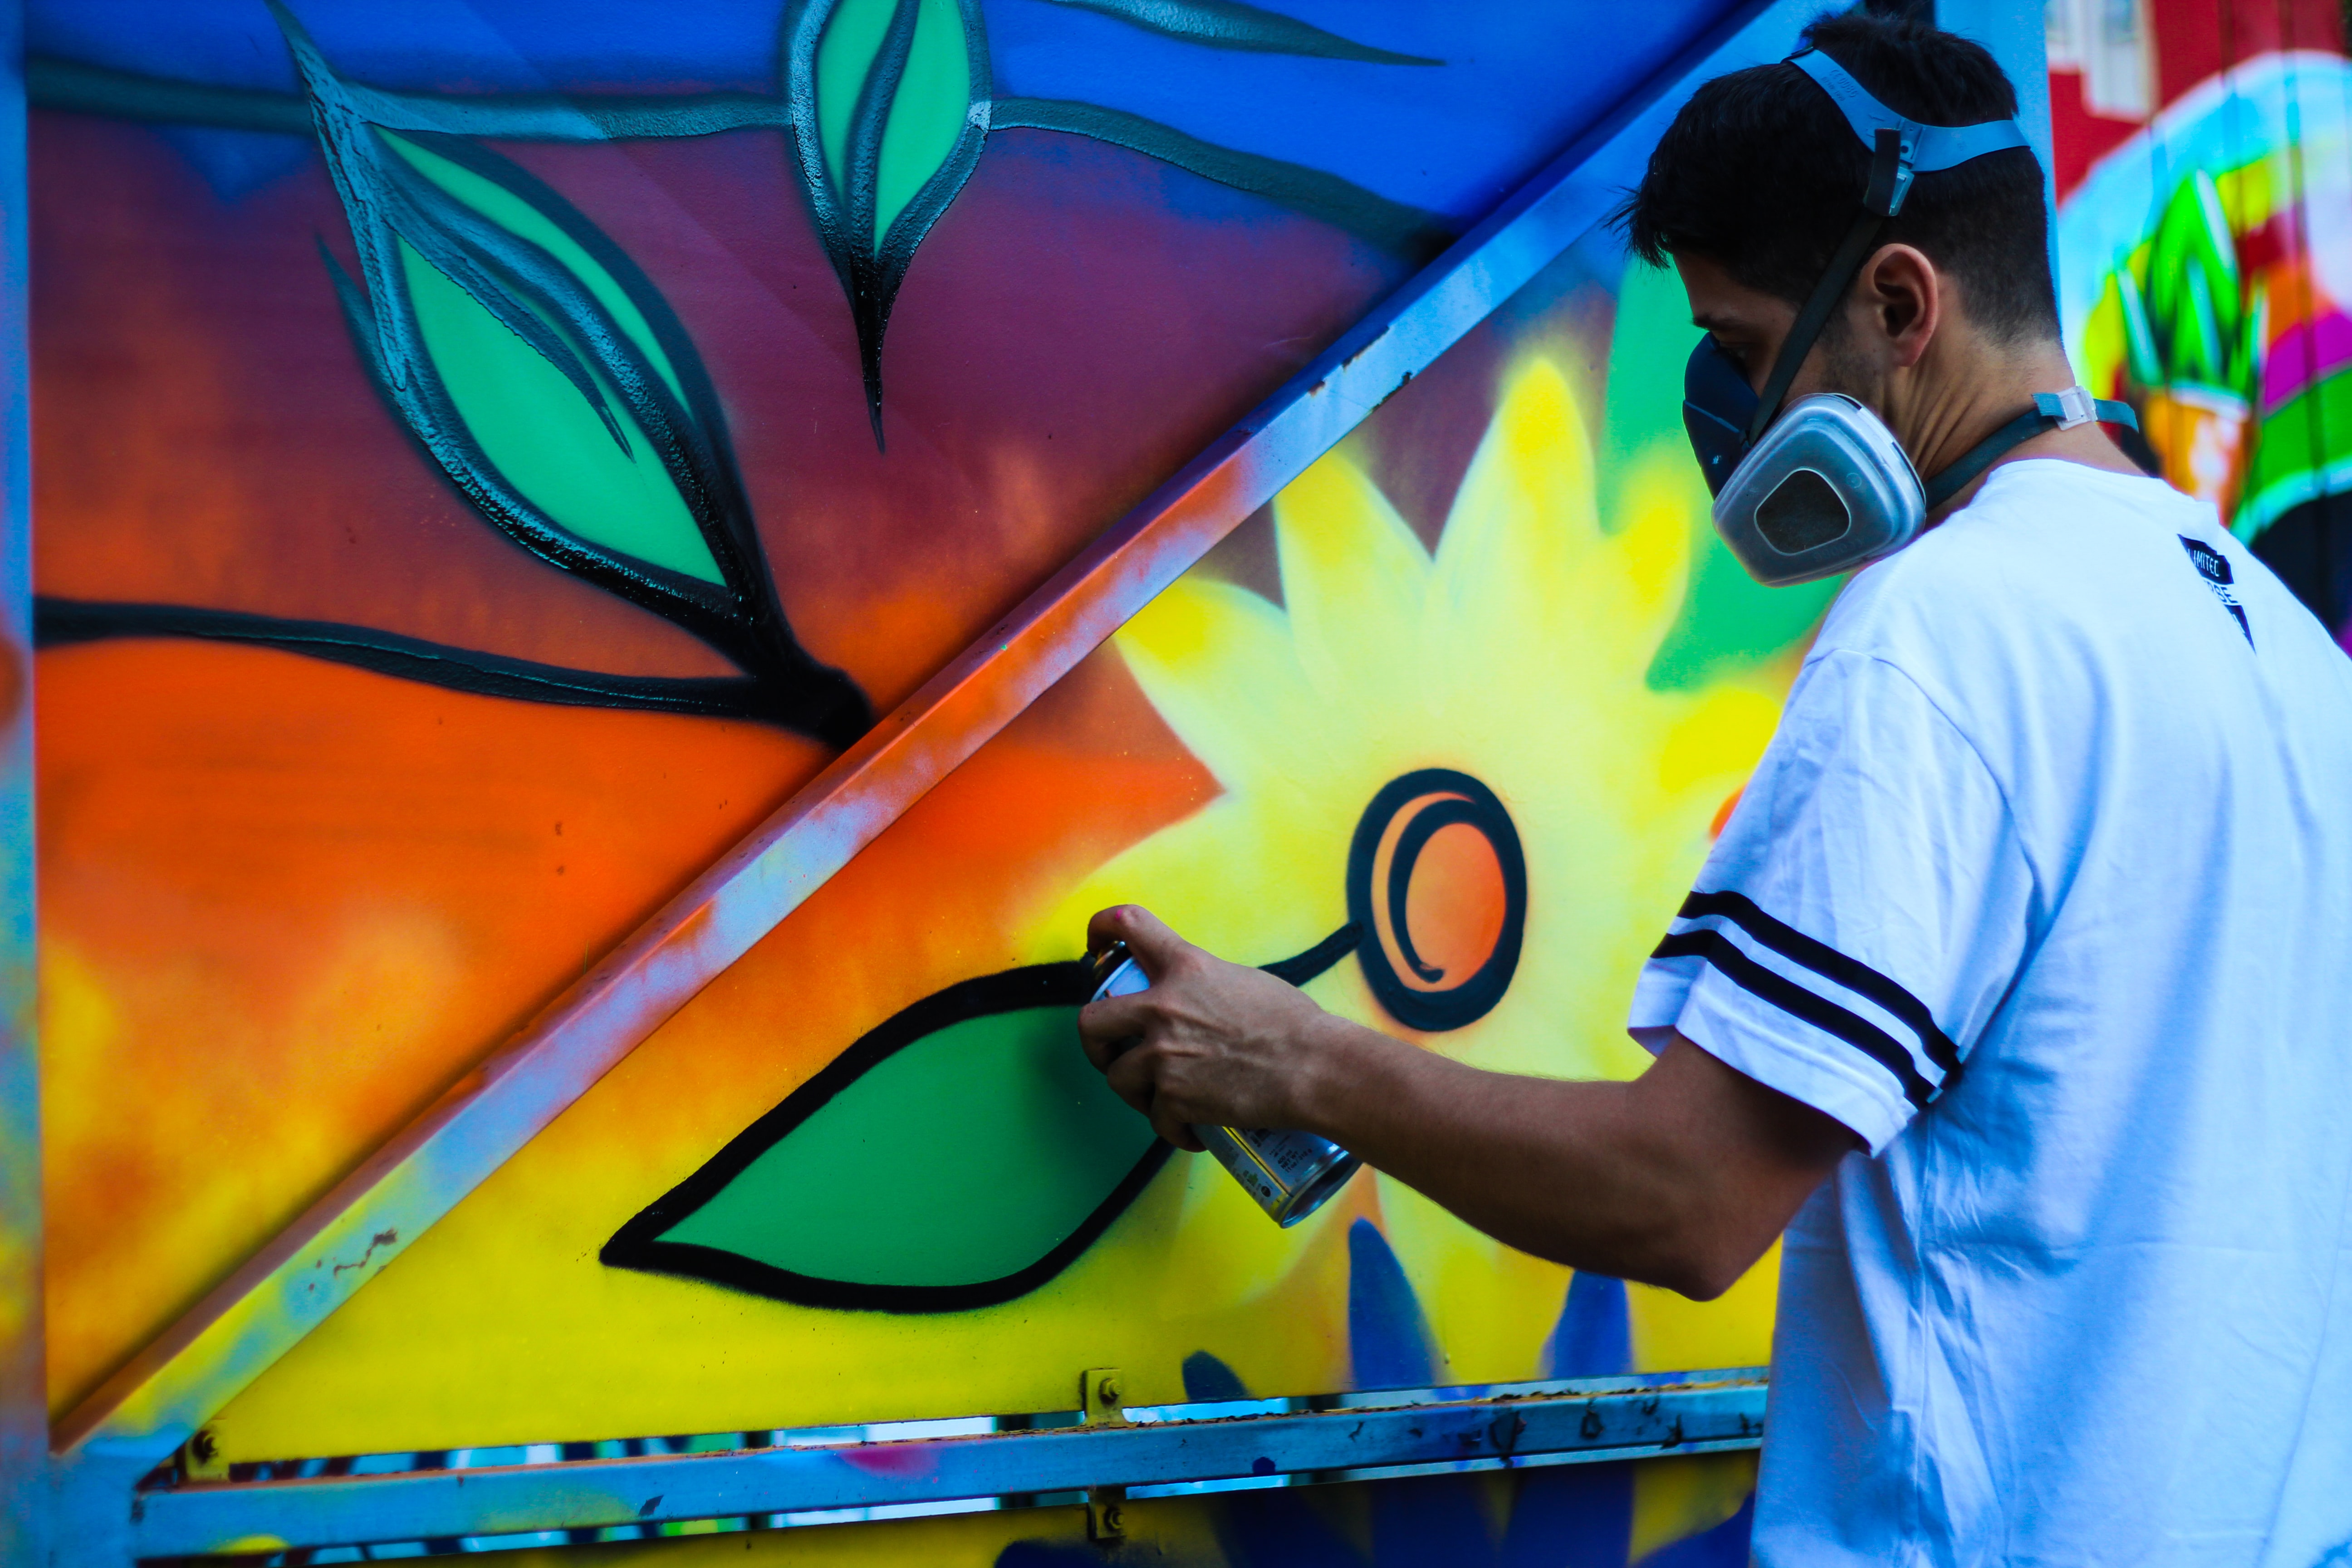 Spray paint graffiti artist in t shirt with mask holding canister creating colorful wall mural